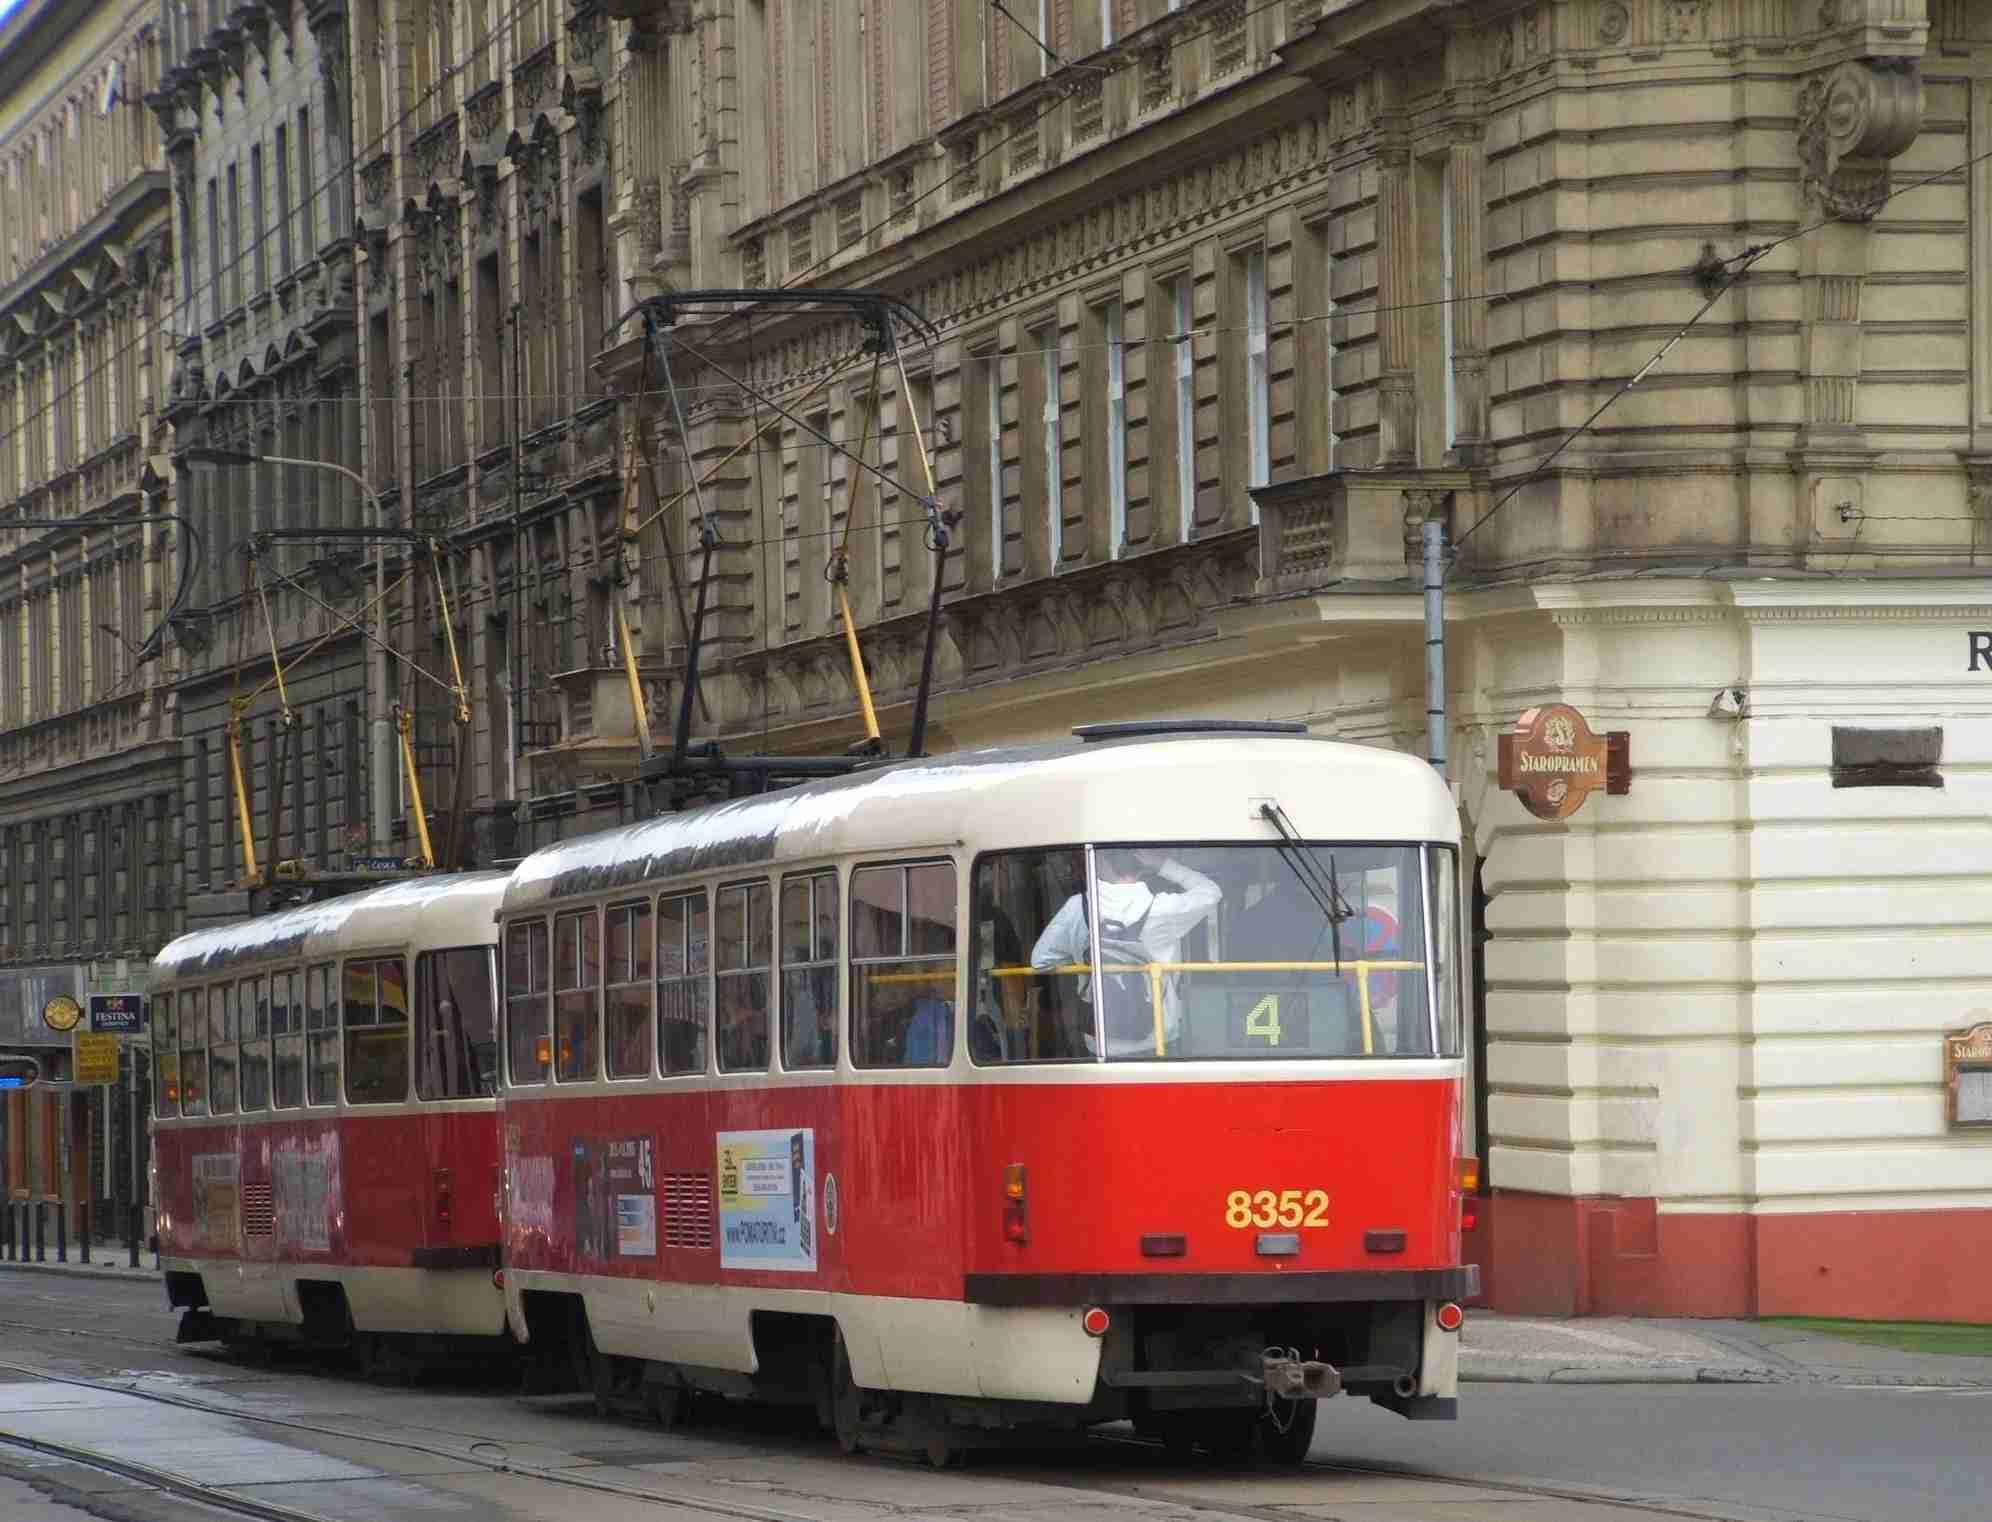 Trams are a convenient way of traveling around Prague. Photo by Elen Turner